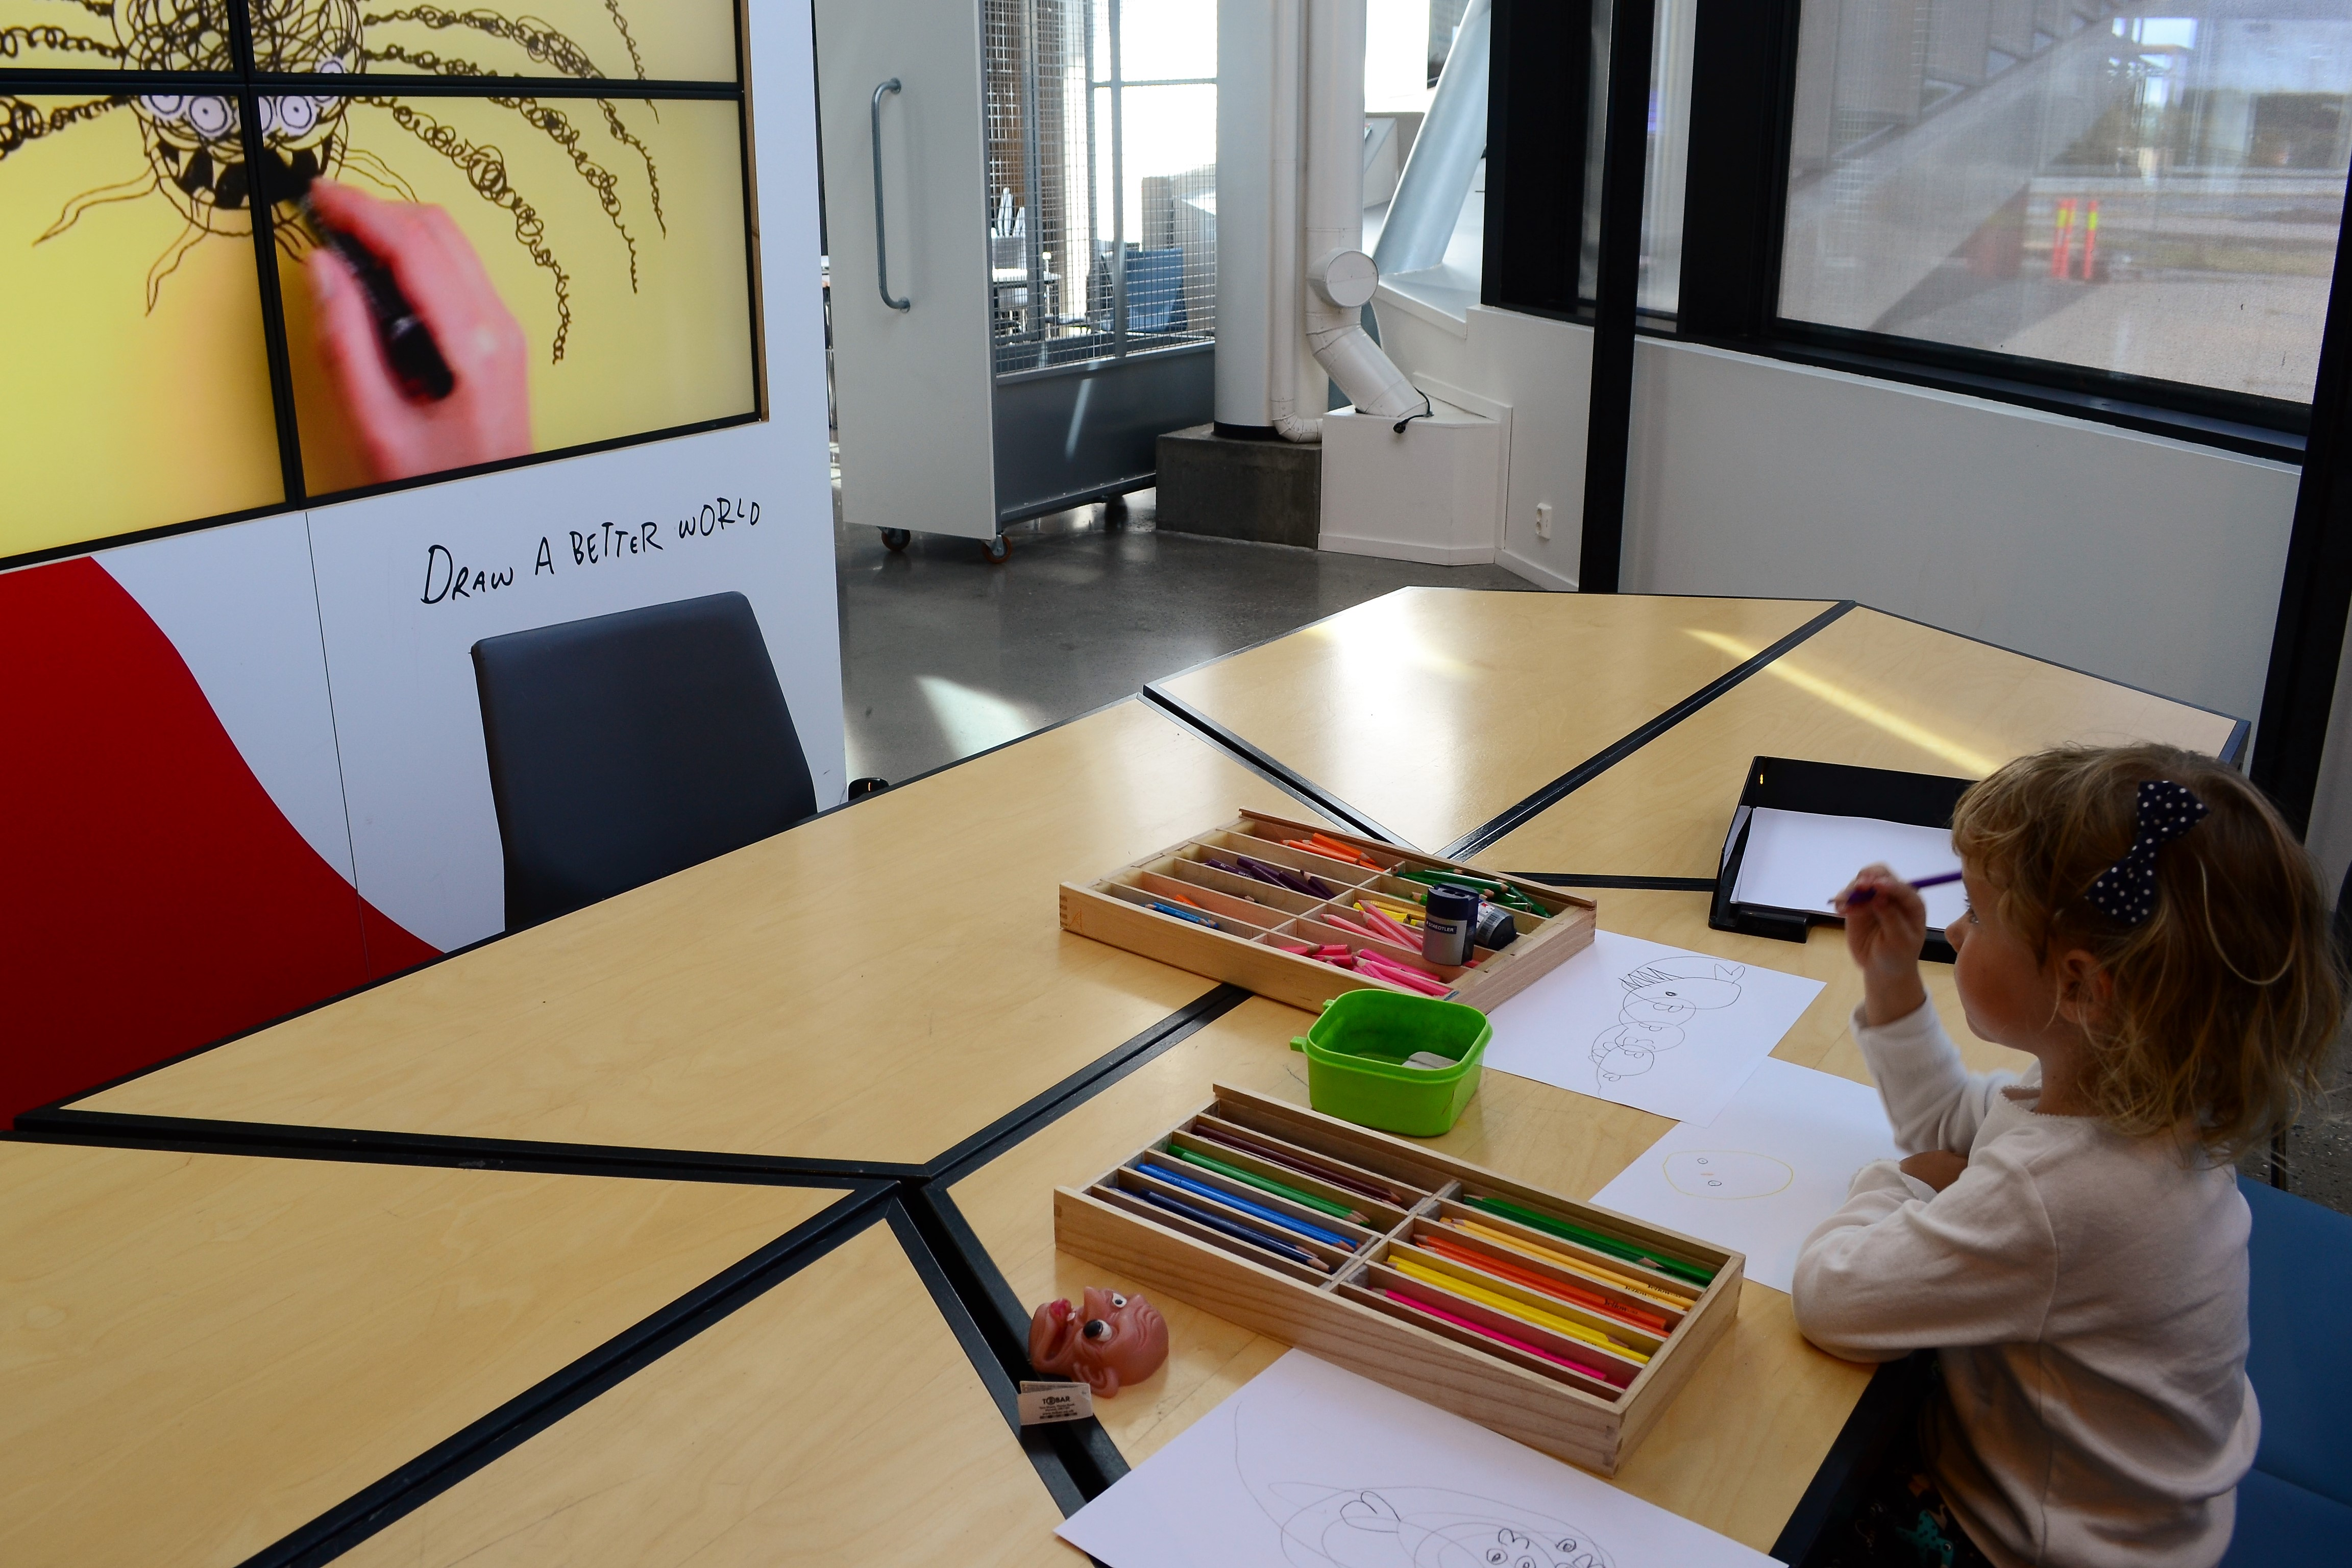 drawing with Øistein in inspiria science centre